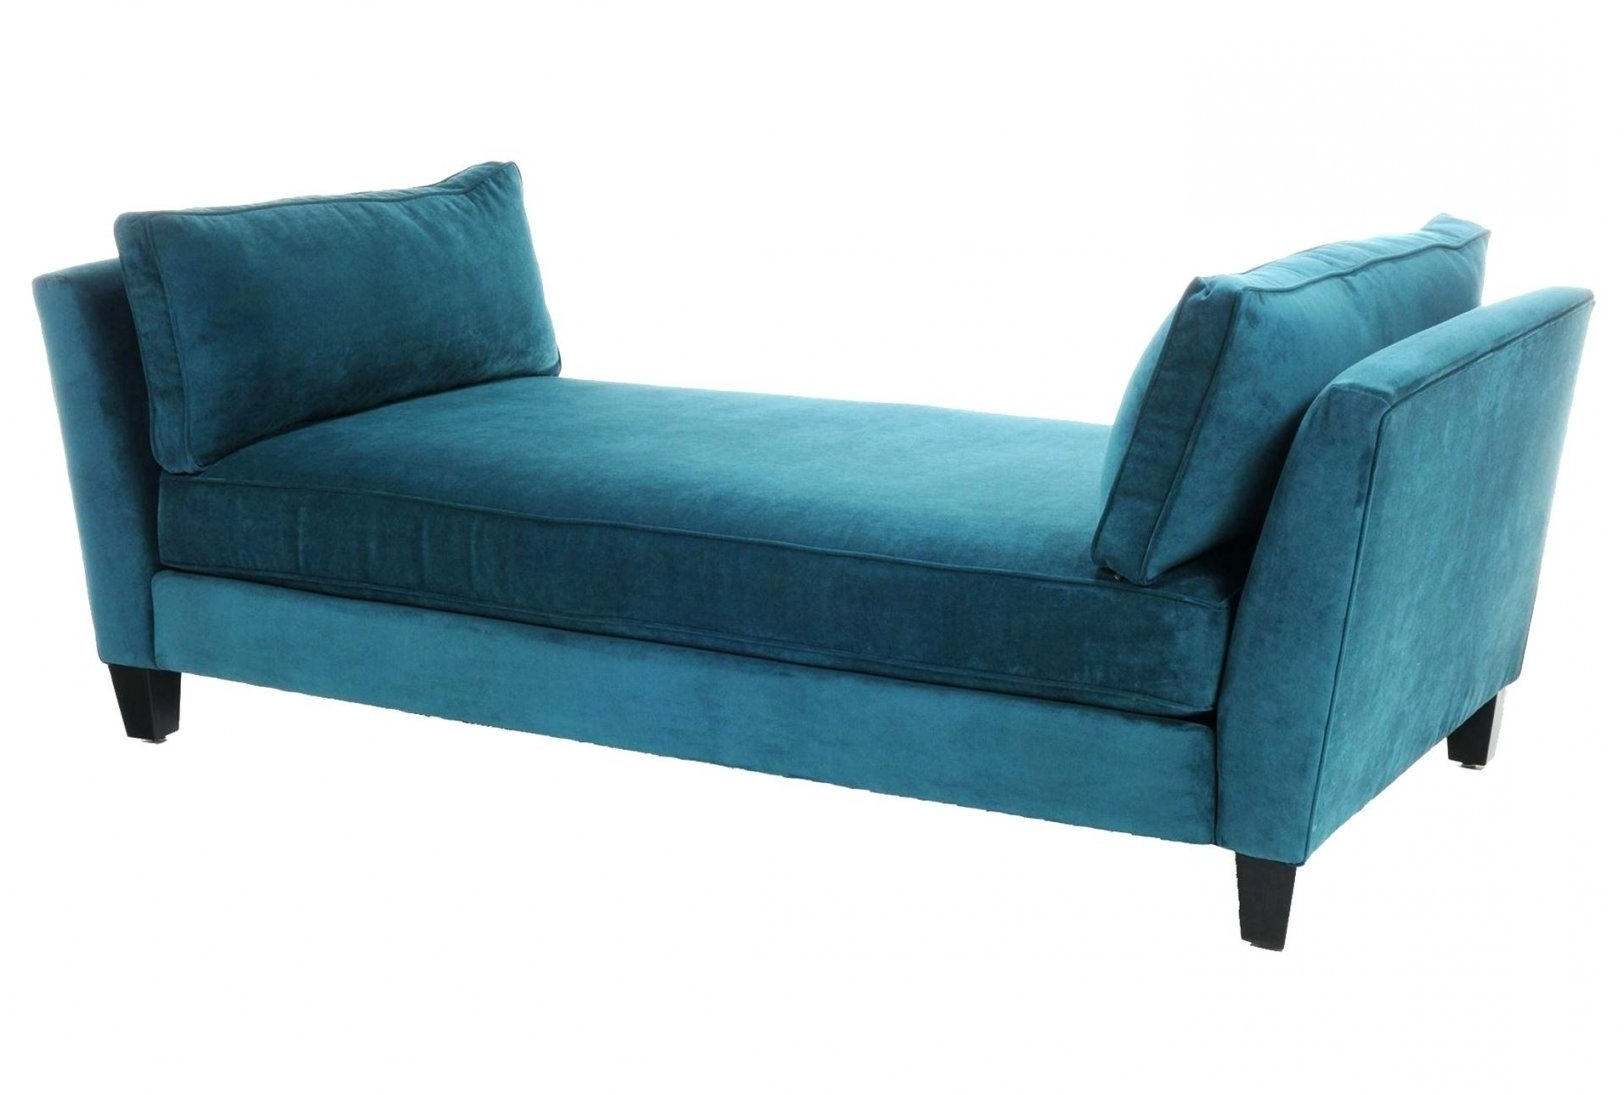 Most Recently Released Daybed Chaise Lounge Sofa Within Daybed Chaises (View 10 of 15)